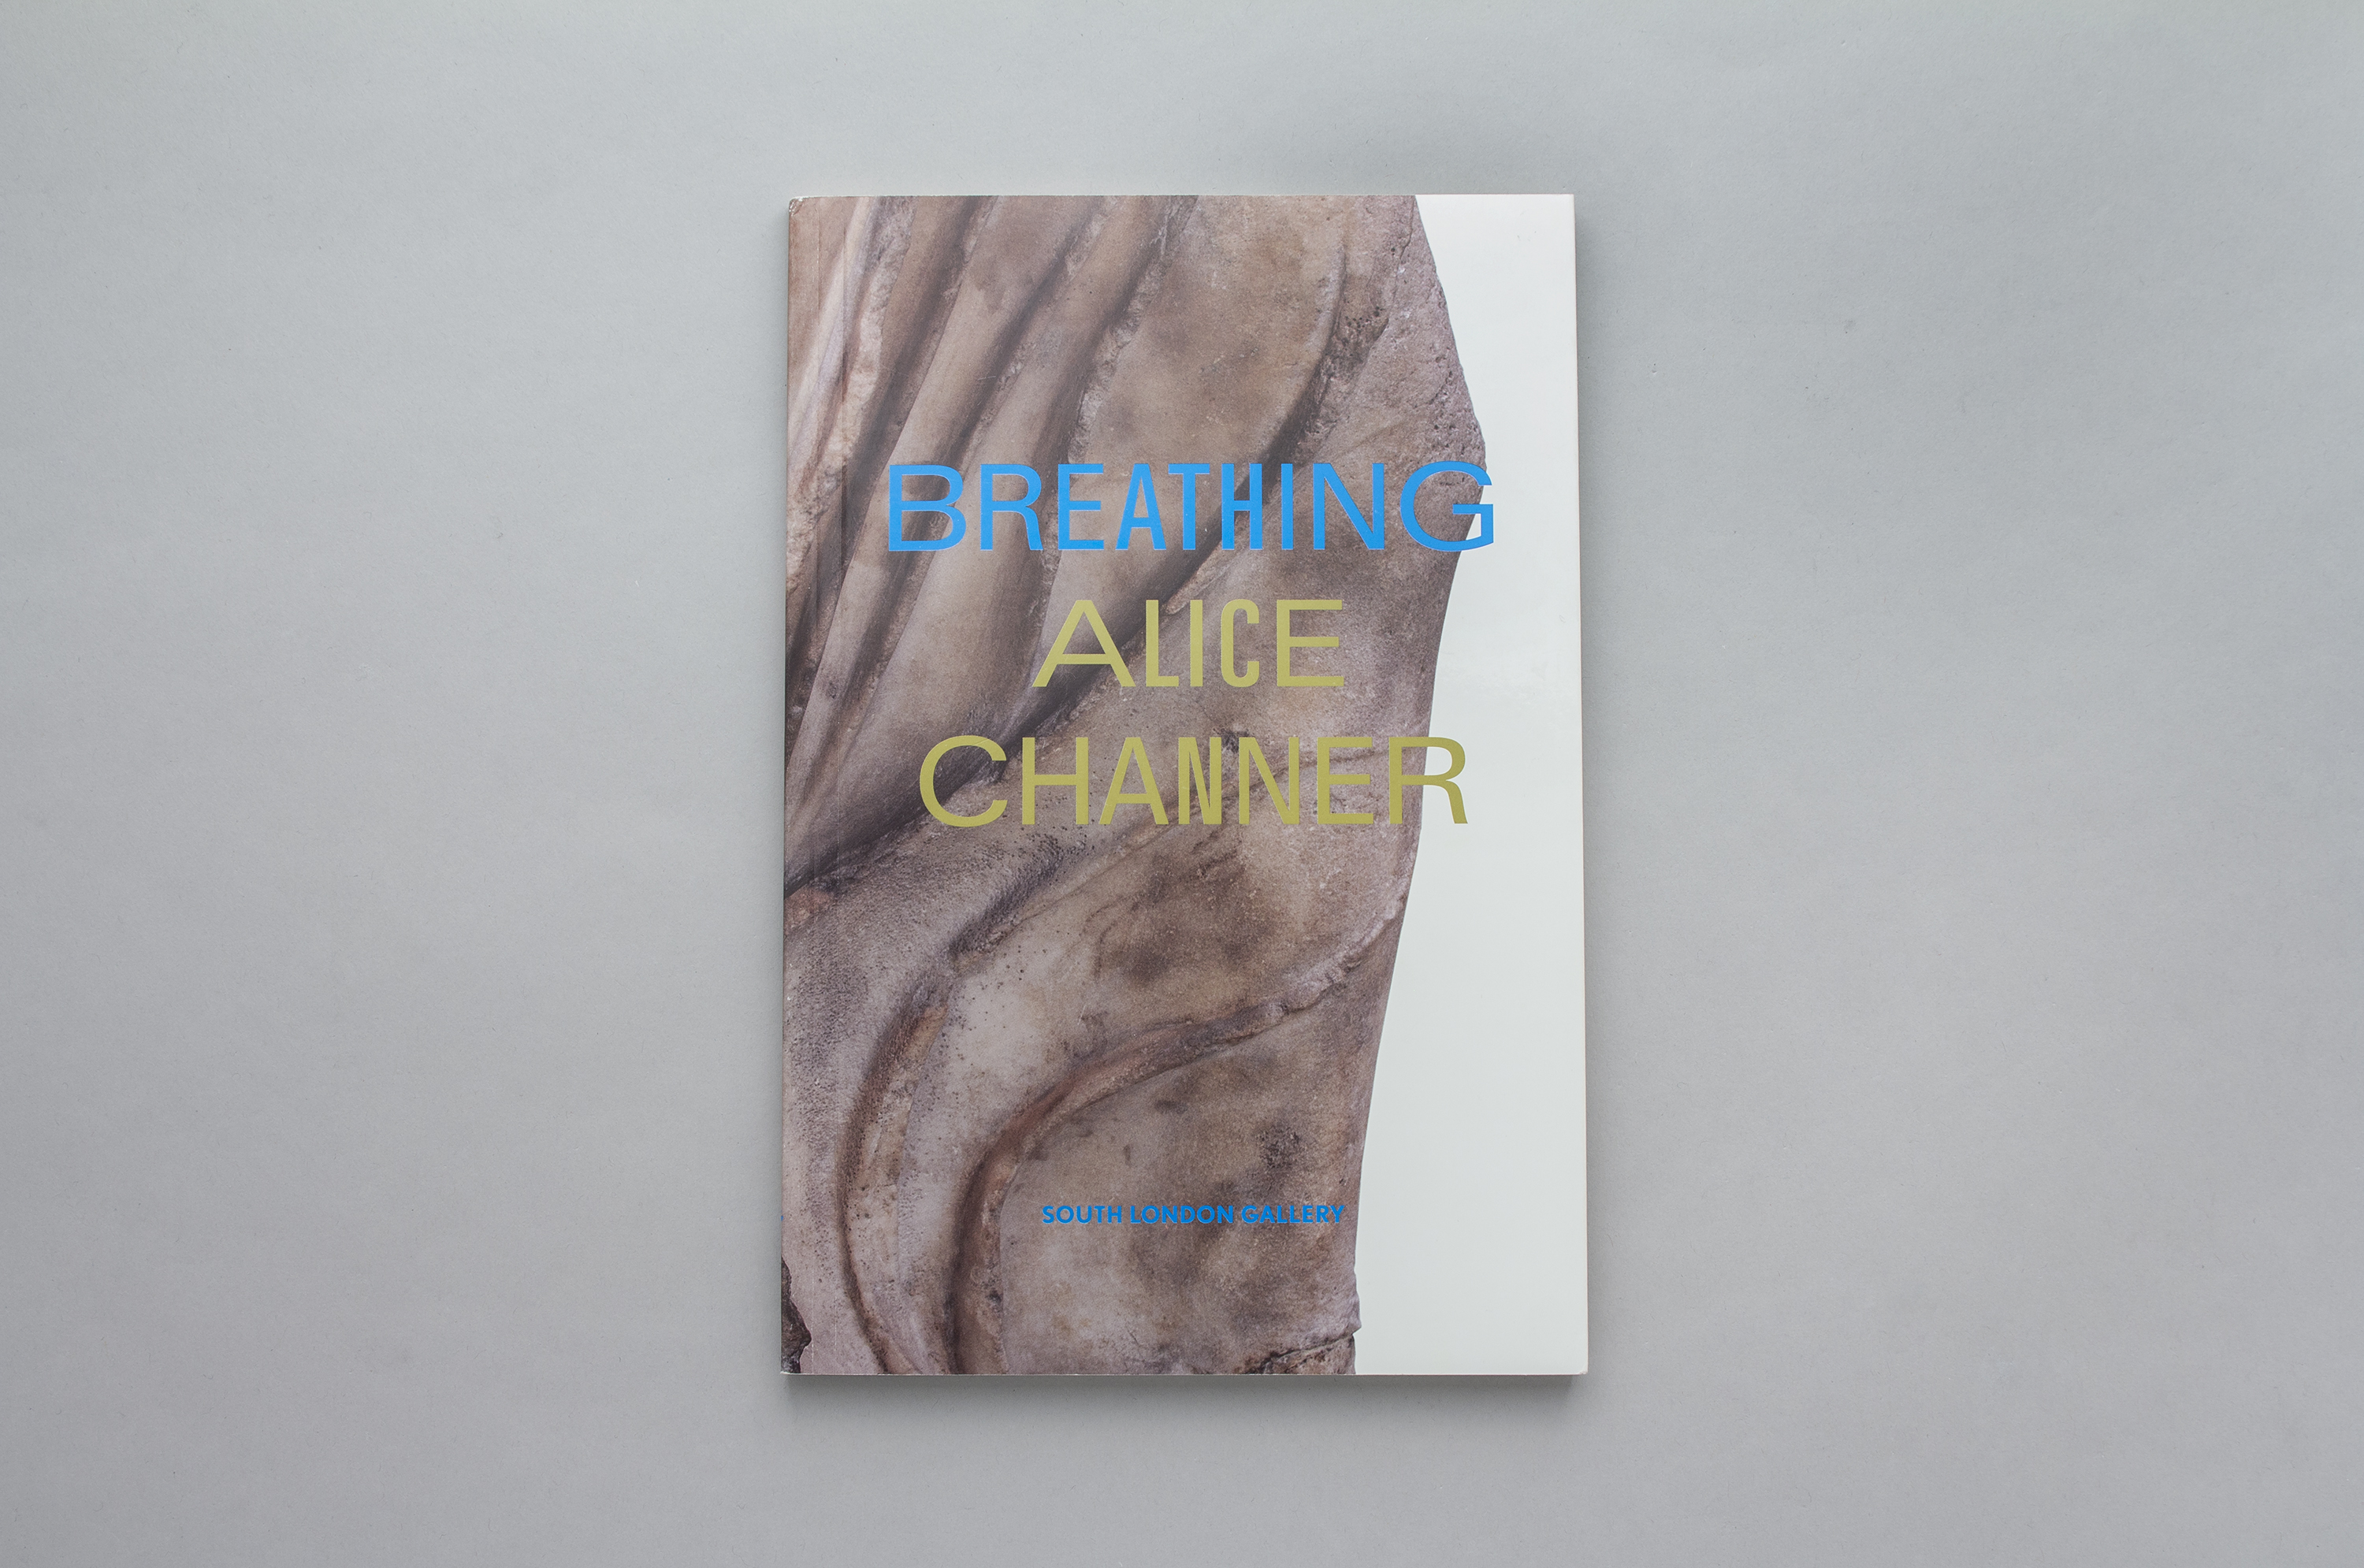 Alice Channer Breathing